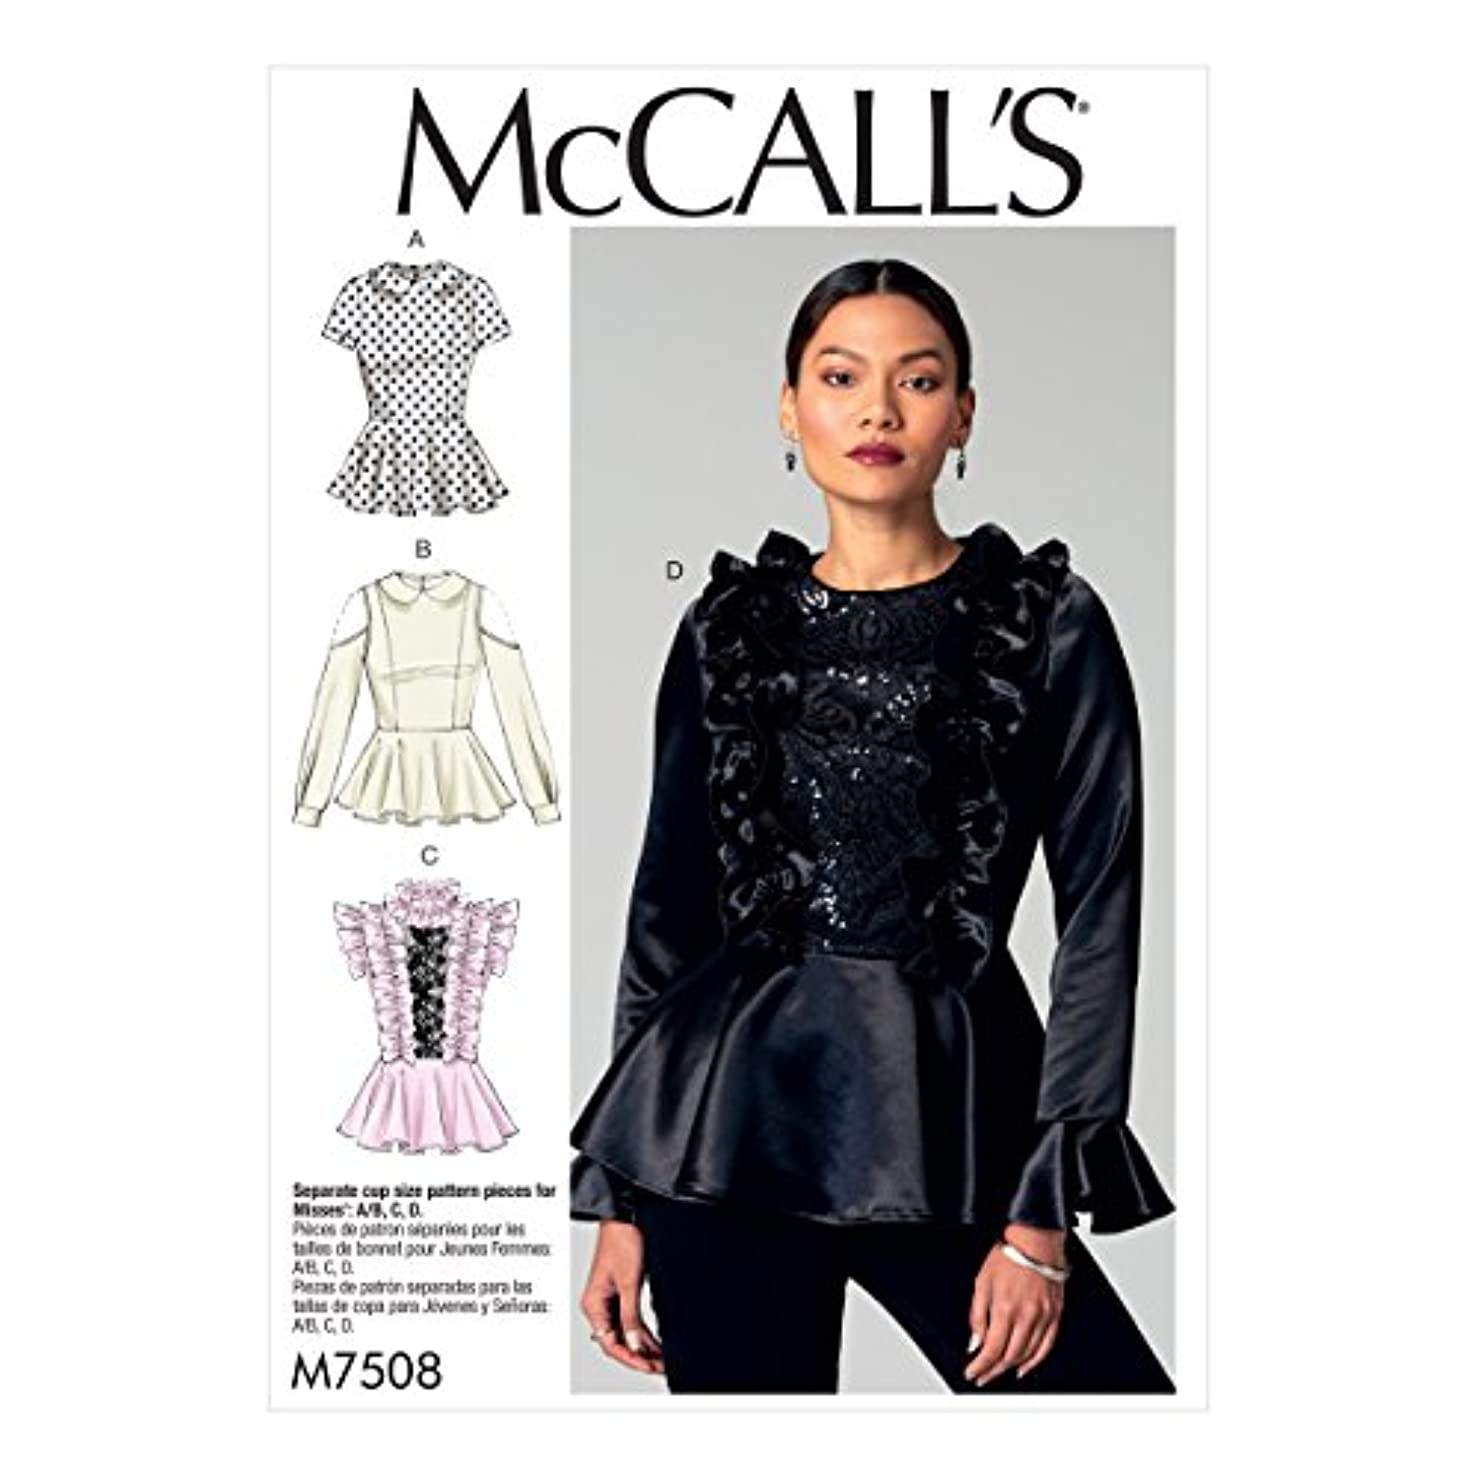 MISSES UNLINED JACKET, TANK DRESS OR TOP, SKIRT & PANTS OR SHORTS SIZE 8-10 MCCALLS MADE FOR YOU - SELECT A SIZE PATTERN 5861